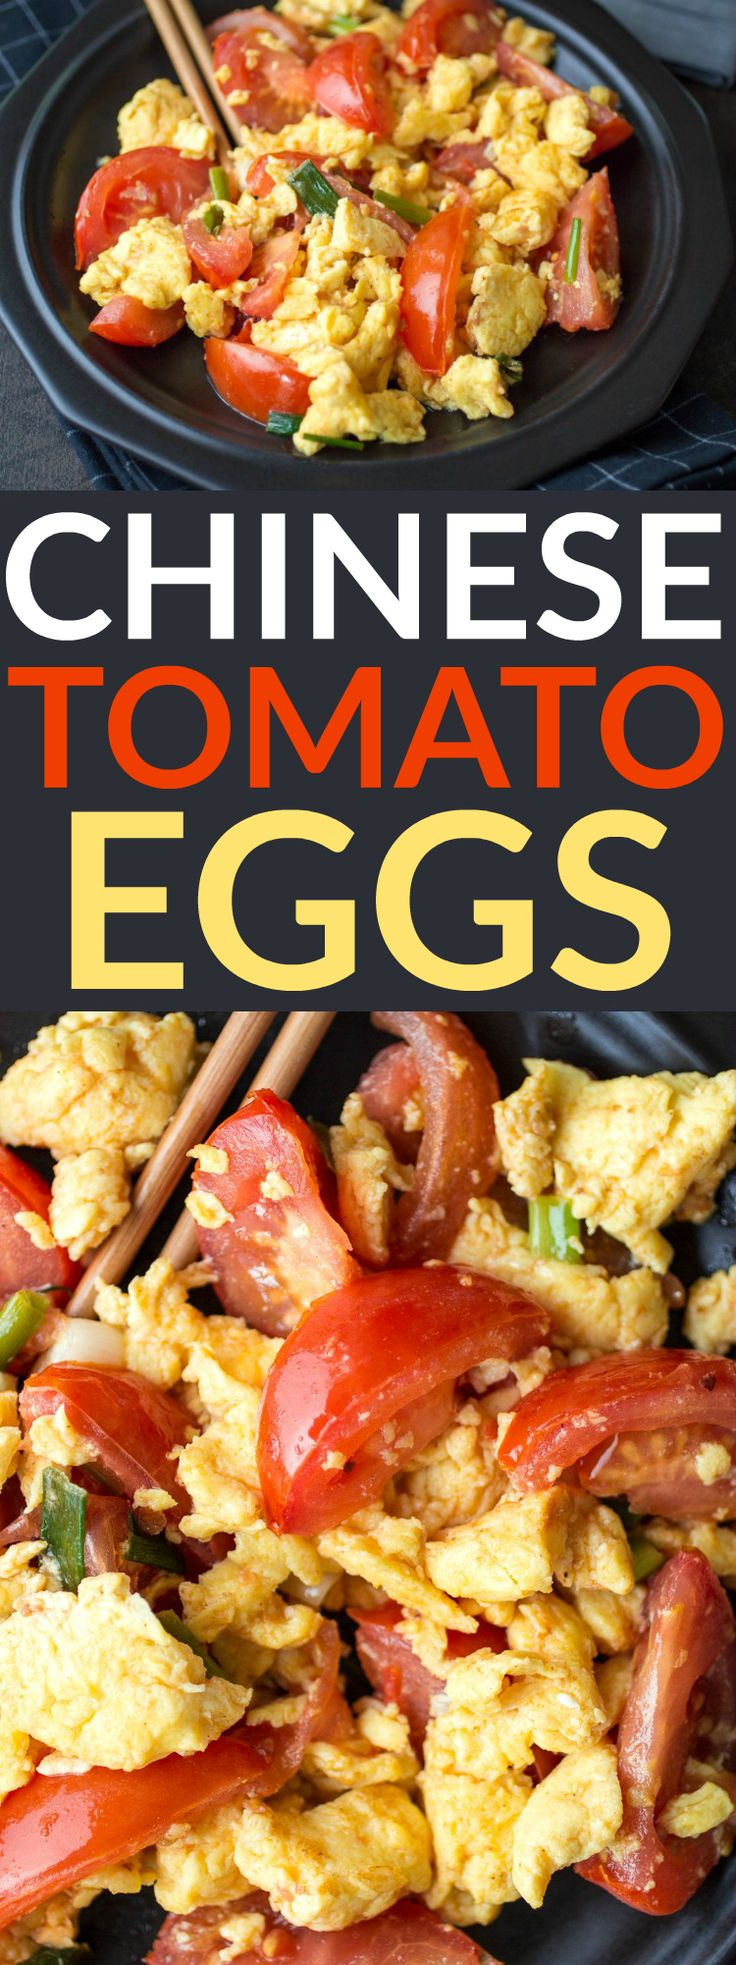 Chinese Stir Fried Tomato and Egg